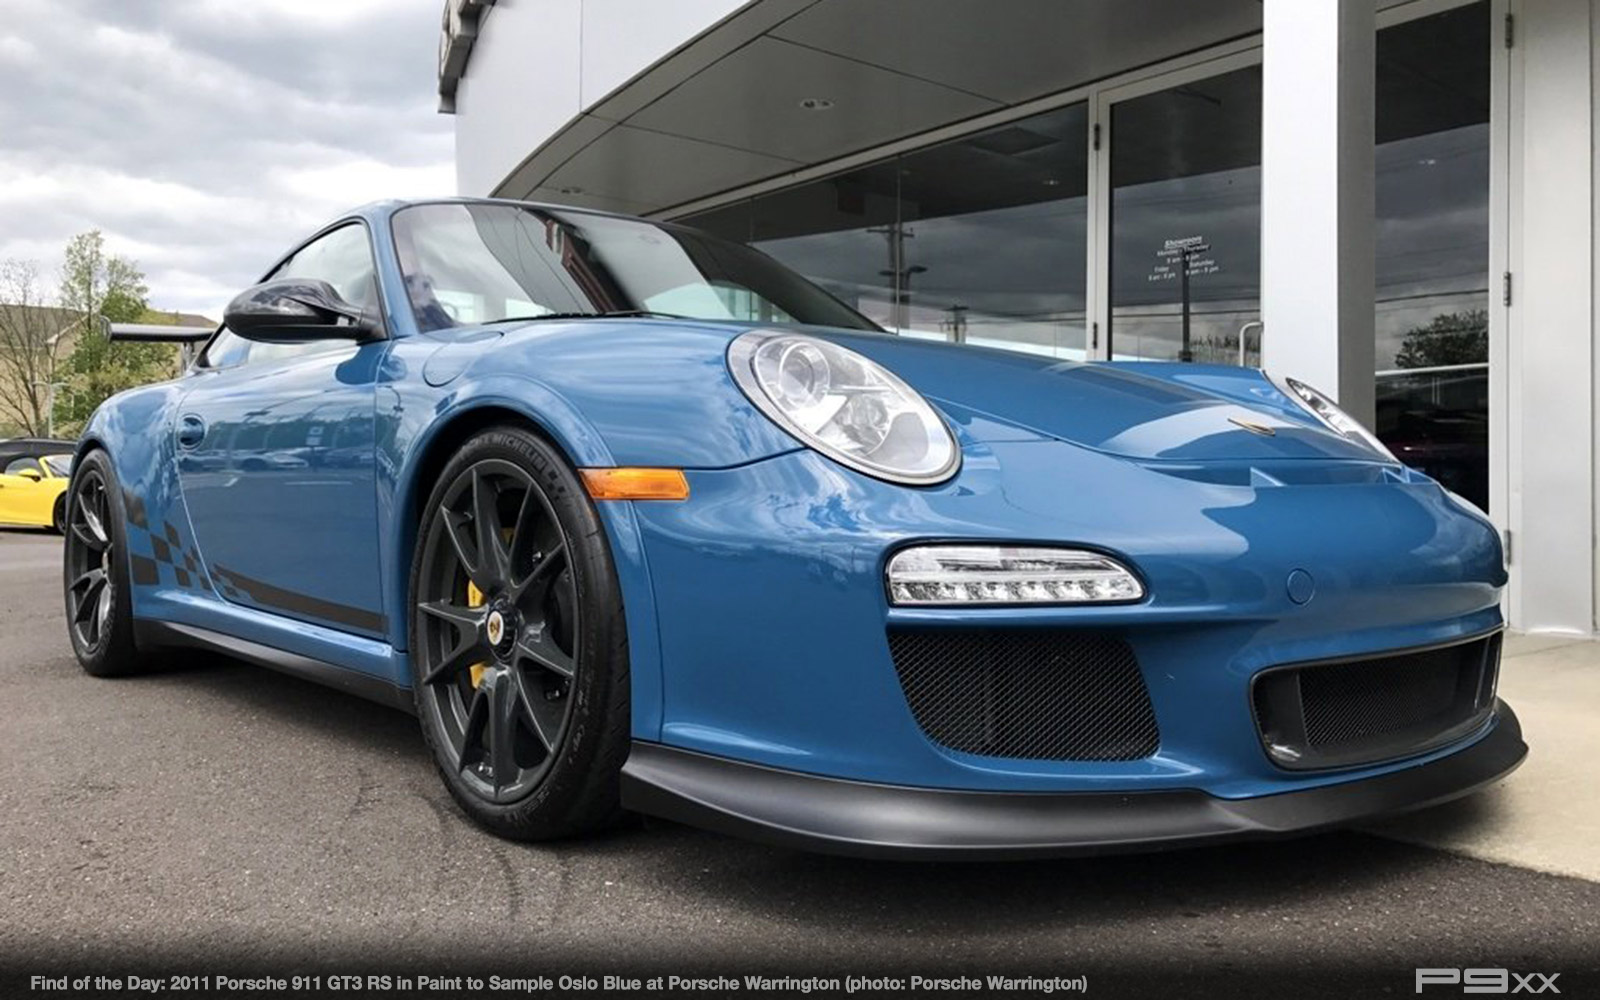 In Market Paint To Sample Oslo Blue 2011 Porsche 911 Gt3 Rs P9xx